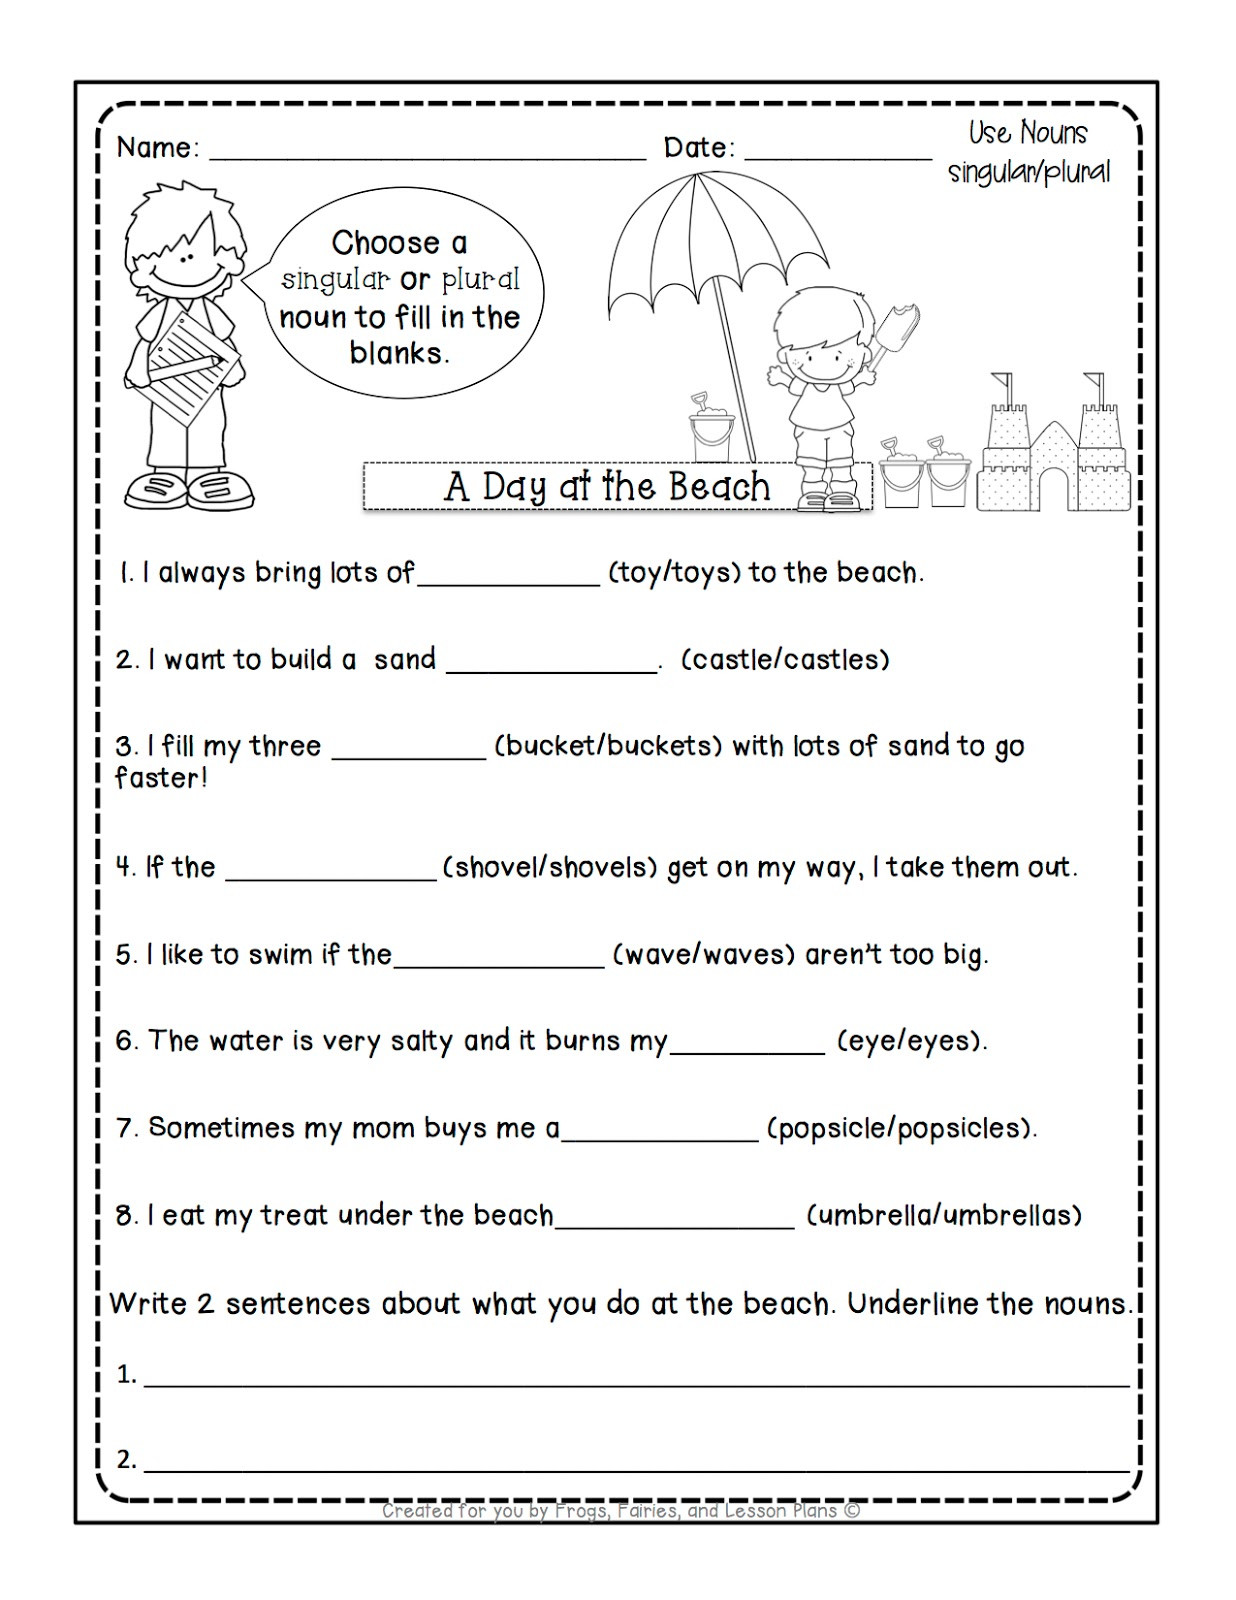 Plurals Worksheet 3rd Grade Frogs Fairies and Lesson Plans Noun Lessons You Need to